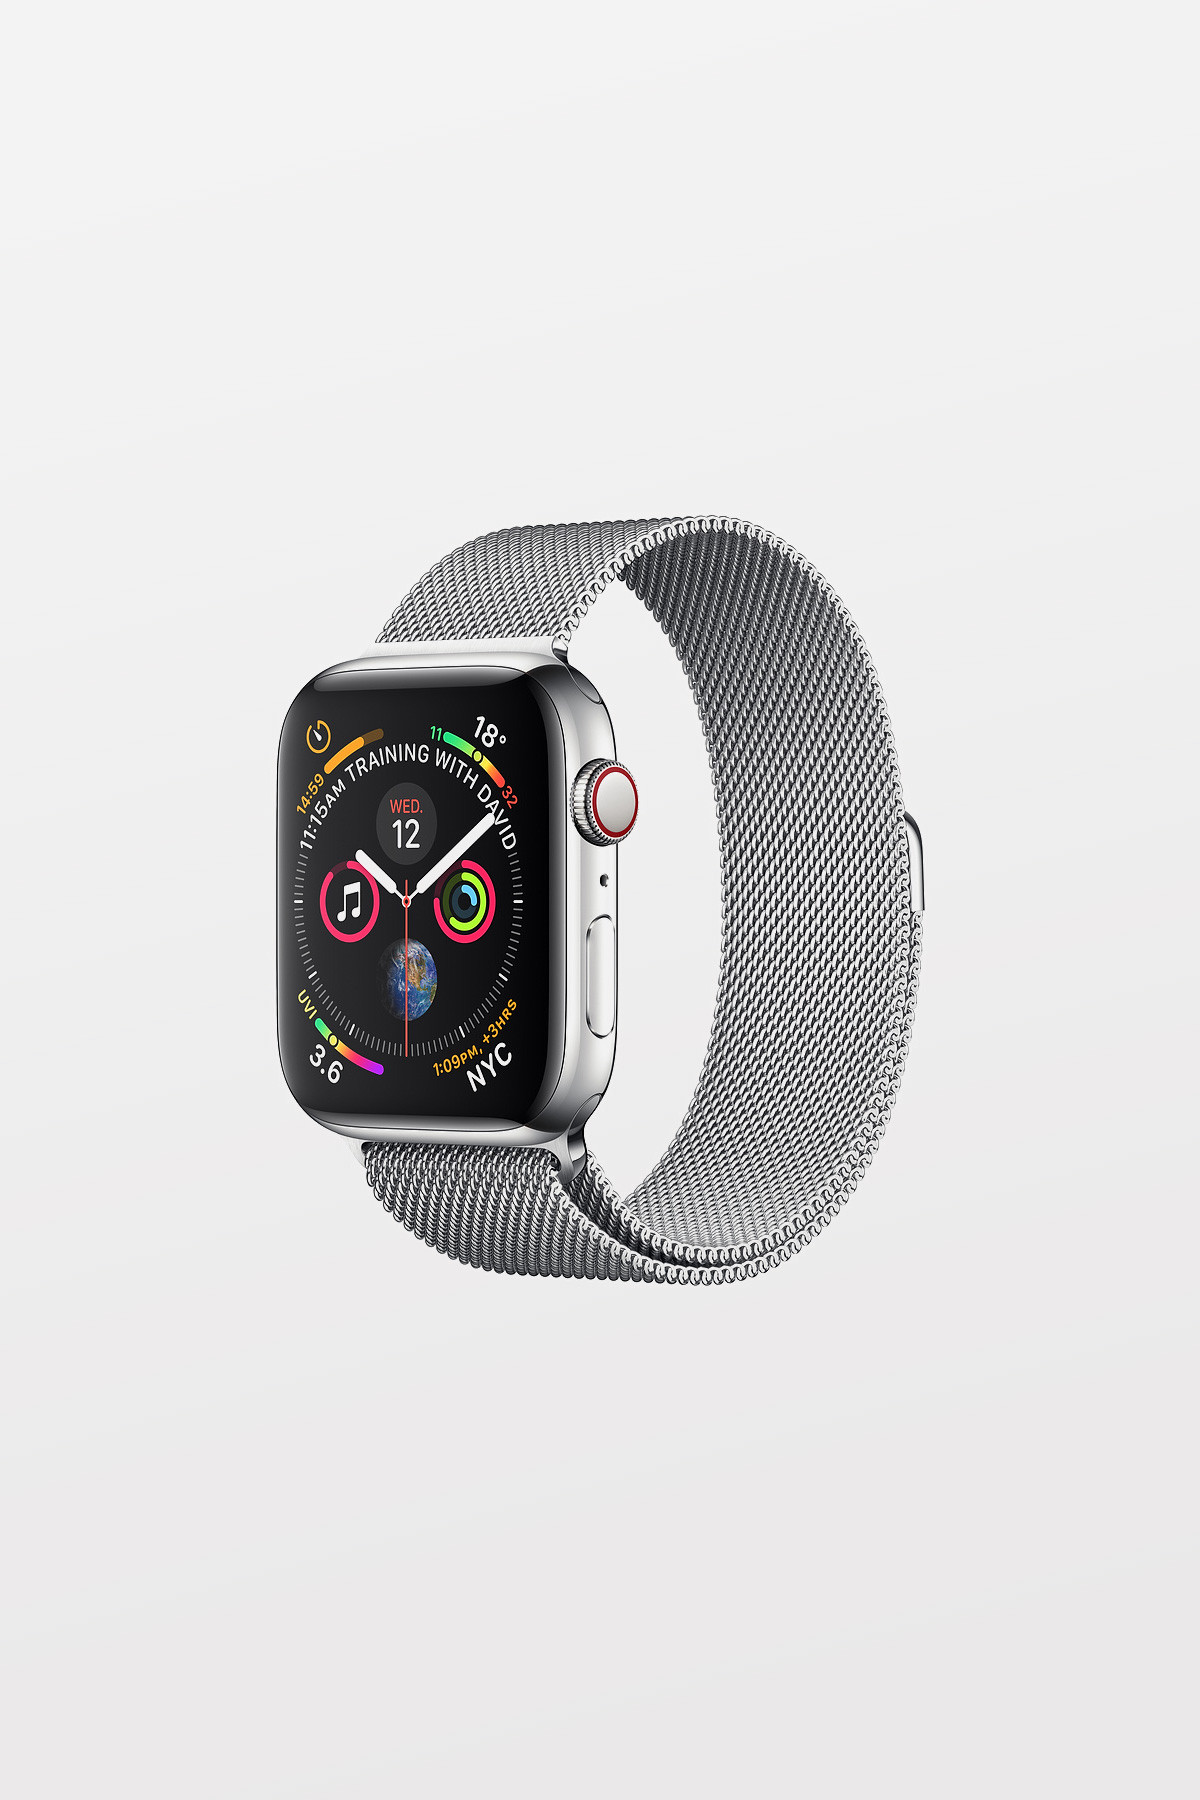 Apple Watch Series 4 Cellular - 40mm - Stainless Steel Case with Milanese Loop